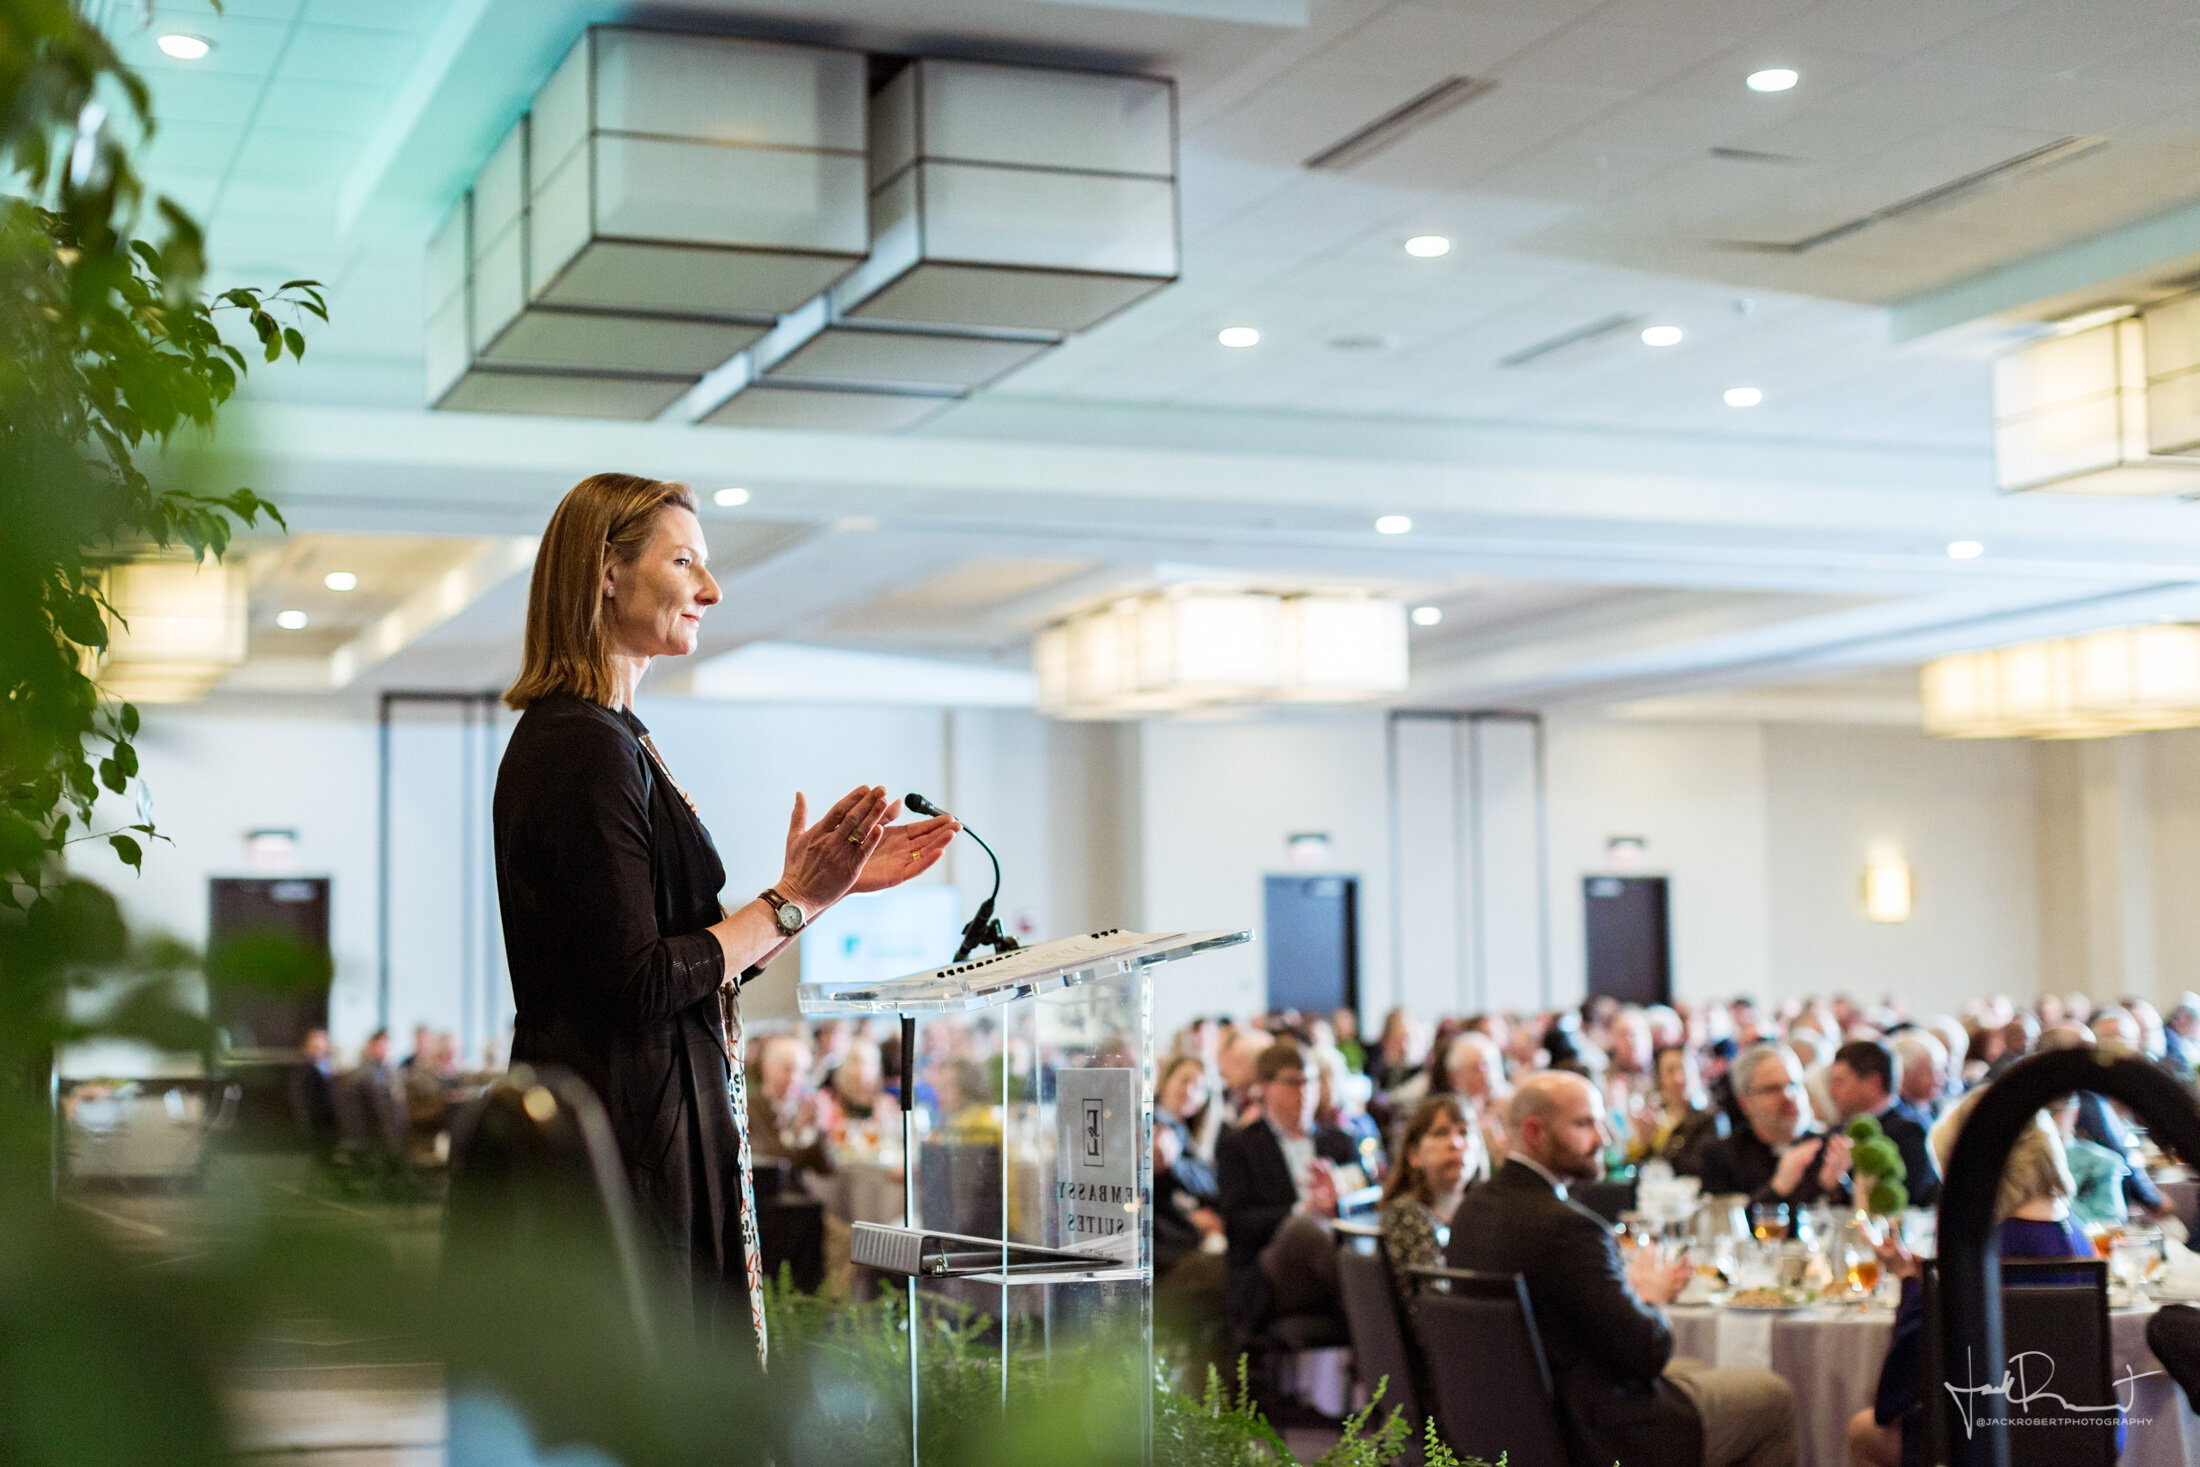 ANDREA COOPER  Event Photography - Upstate Forever - Forever Green Luncheon - Embassy Suites, Greenville, South Carolina - Jack Robert Photography